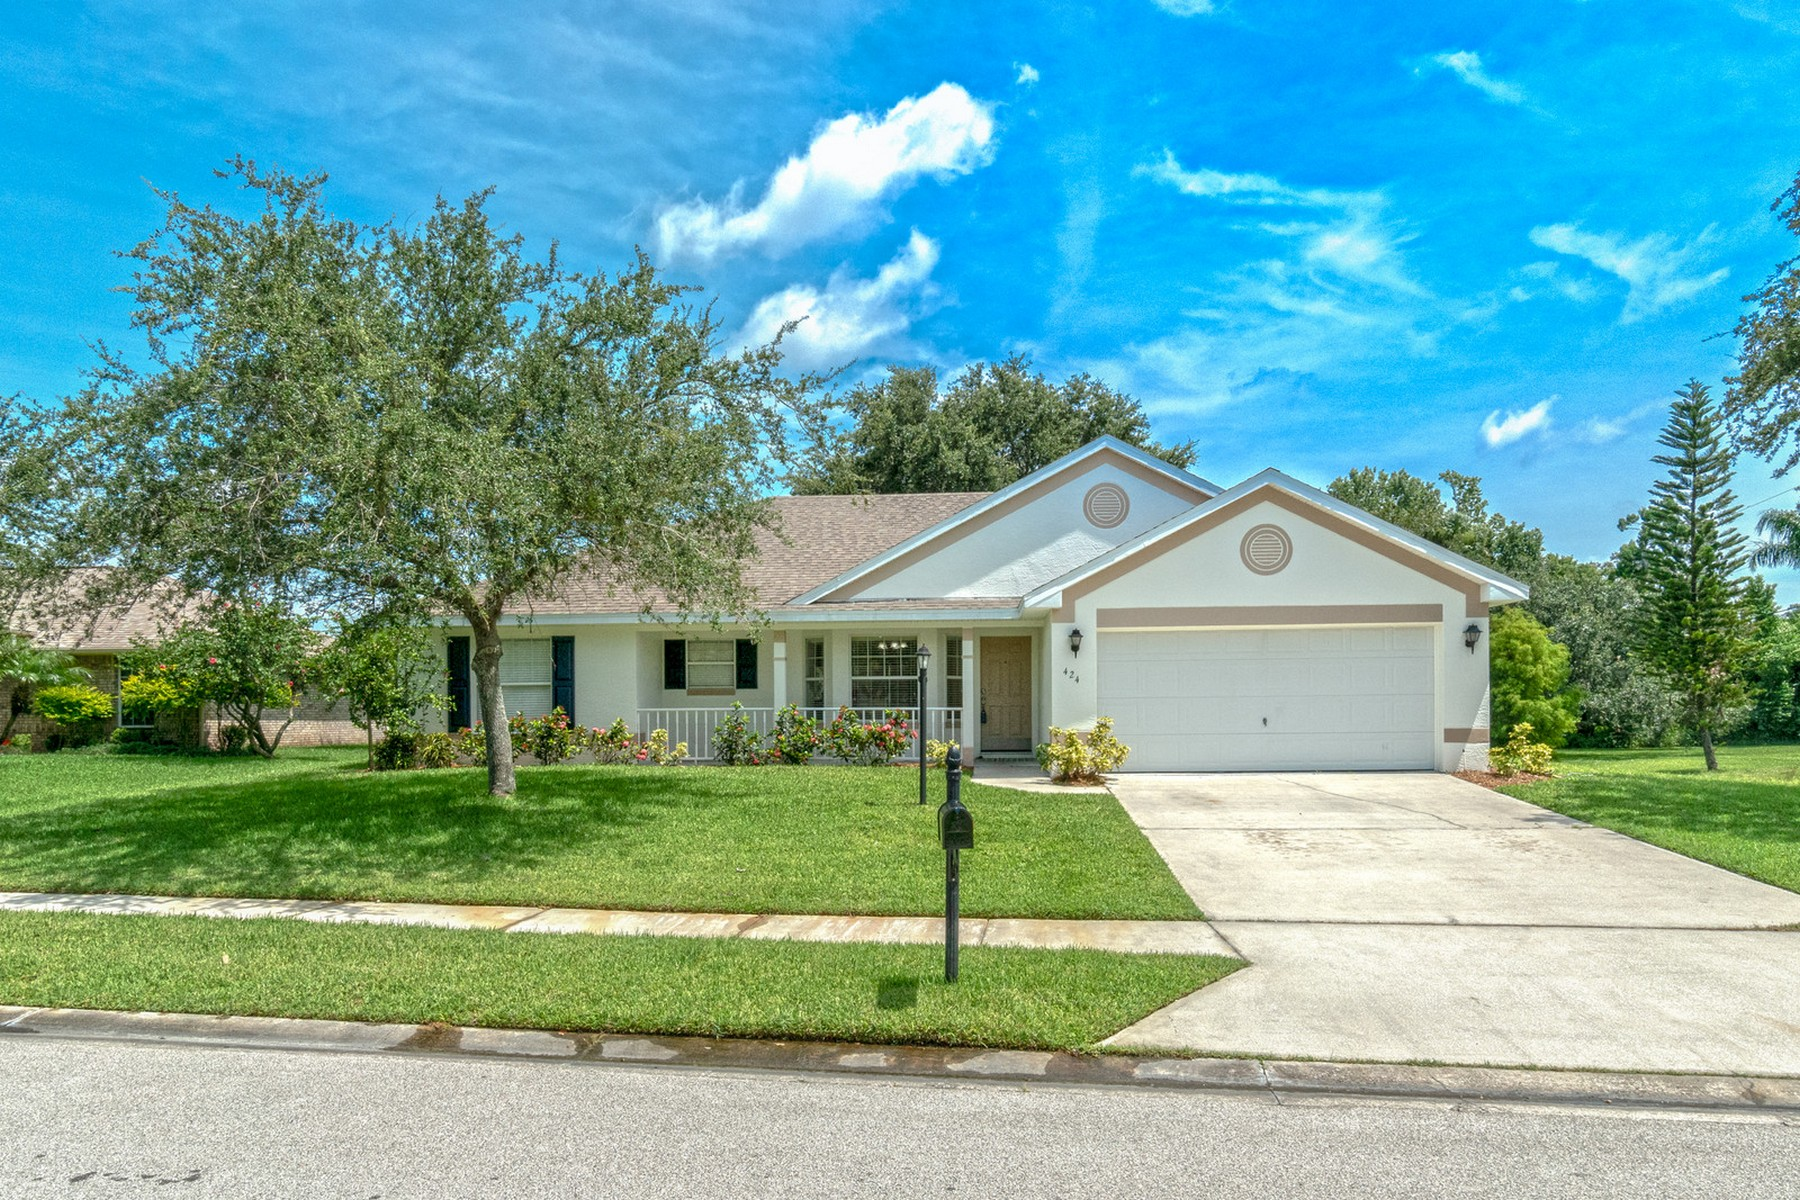 House for Sale at Picture Perfect Home 424 Brown Avenue Melbourne, Florida 32901 United States